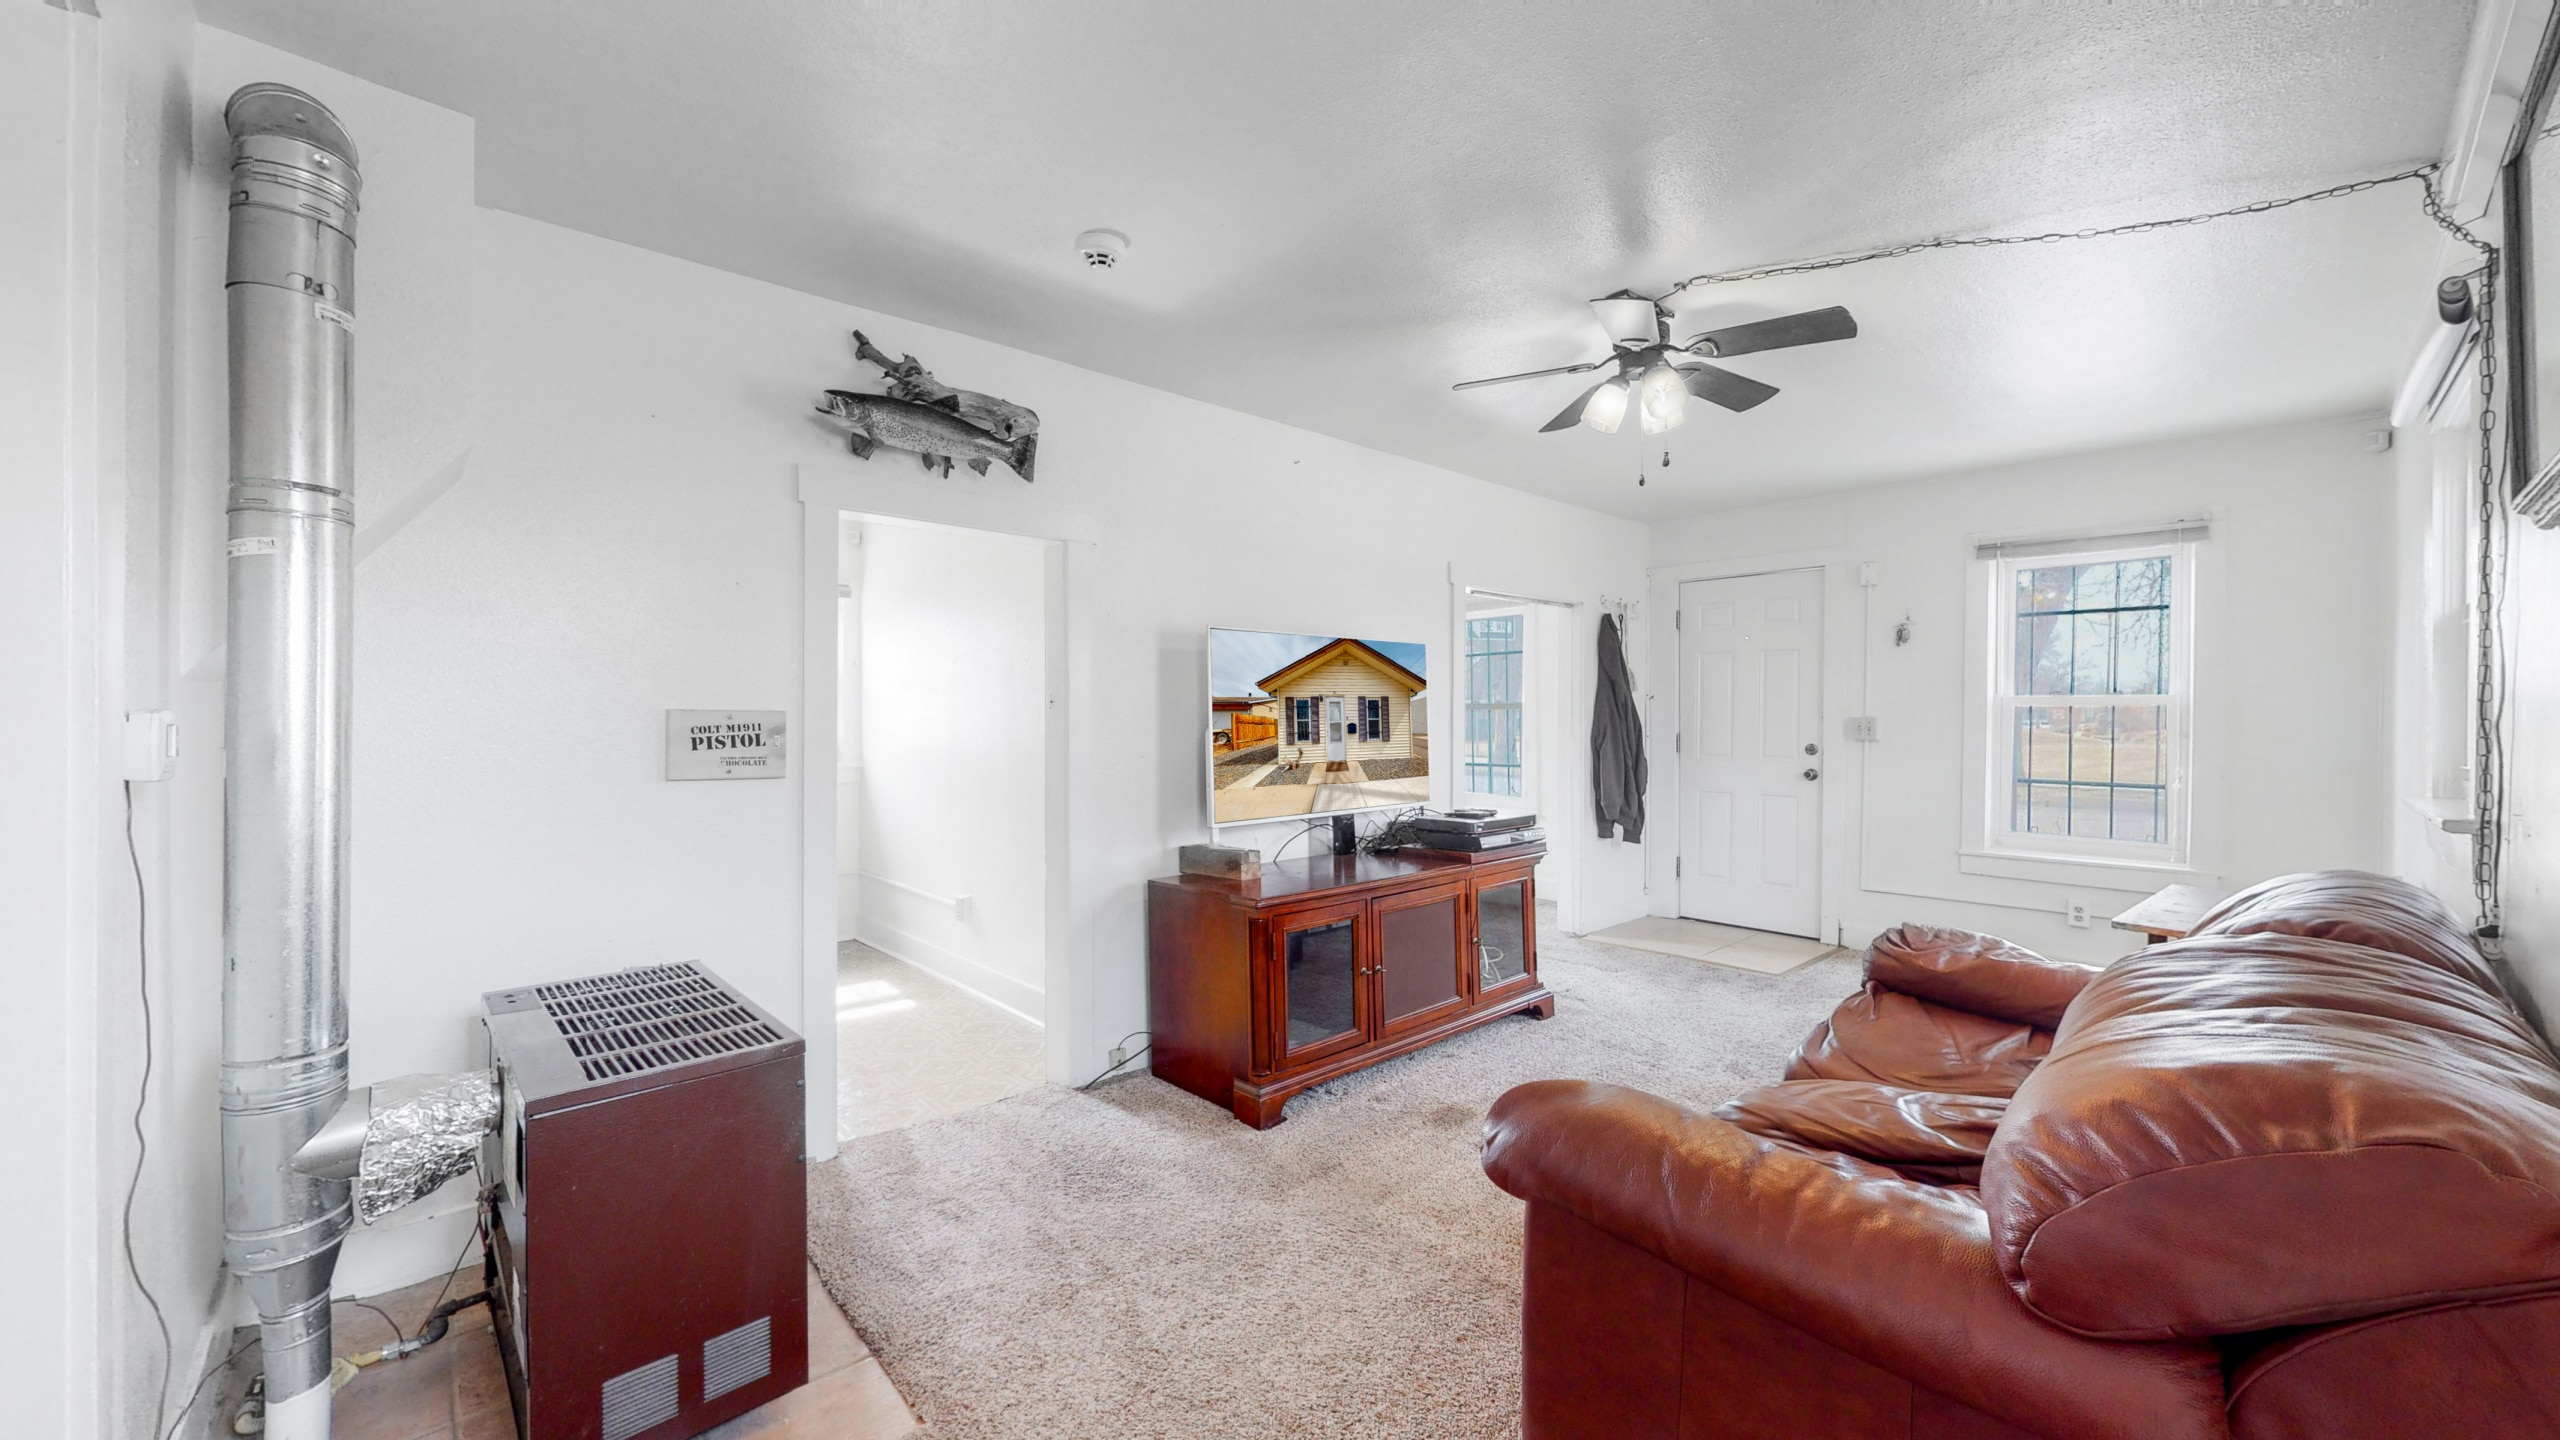 Downtown Brighton Home With Big Living Room and White walls